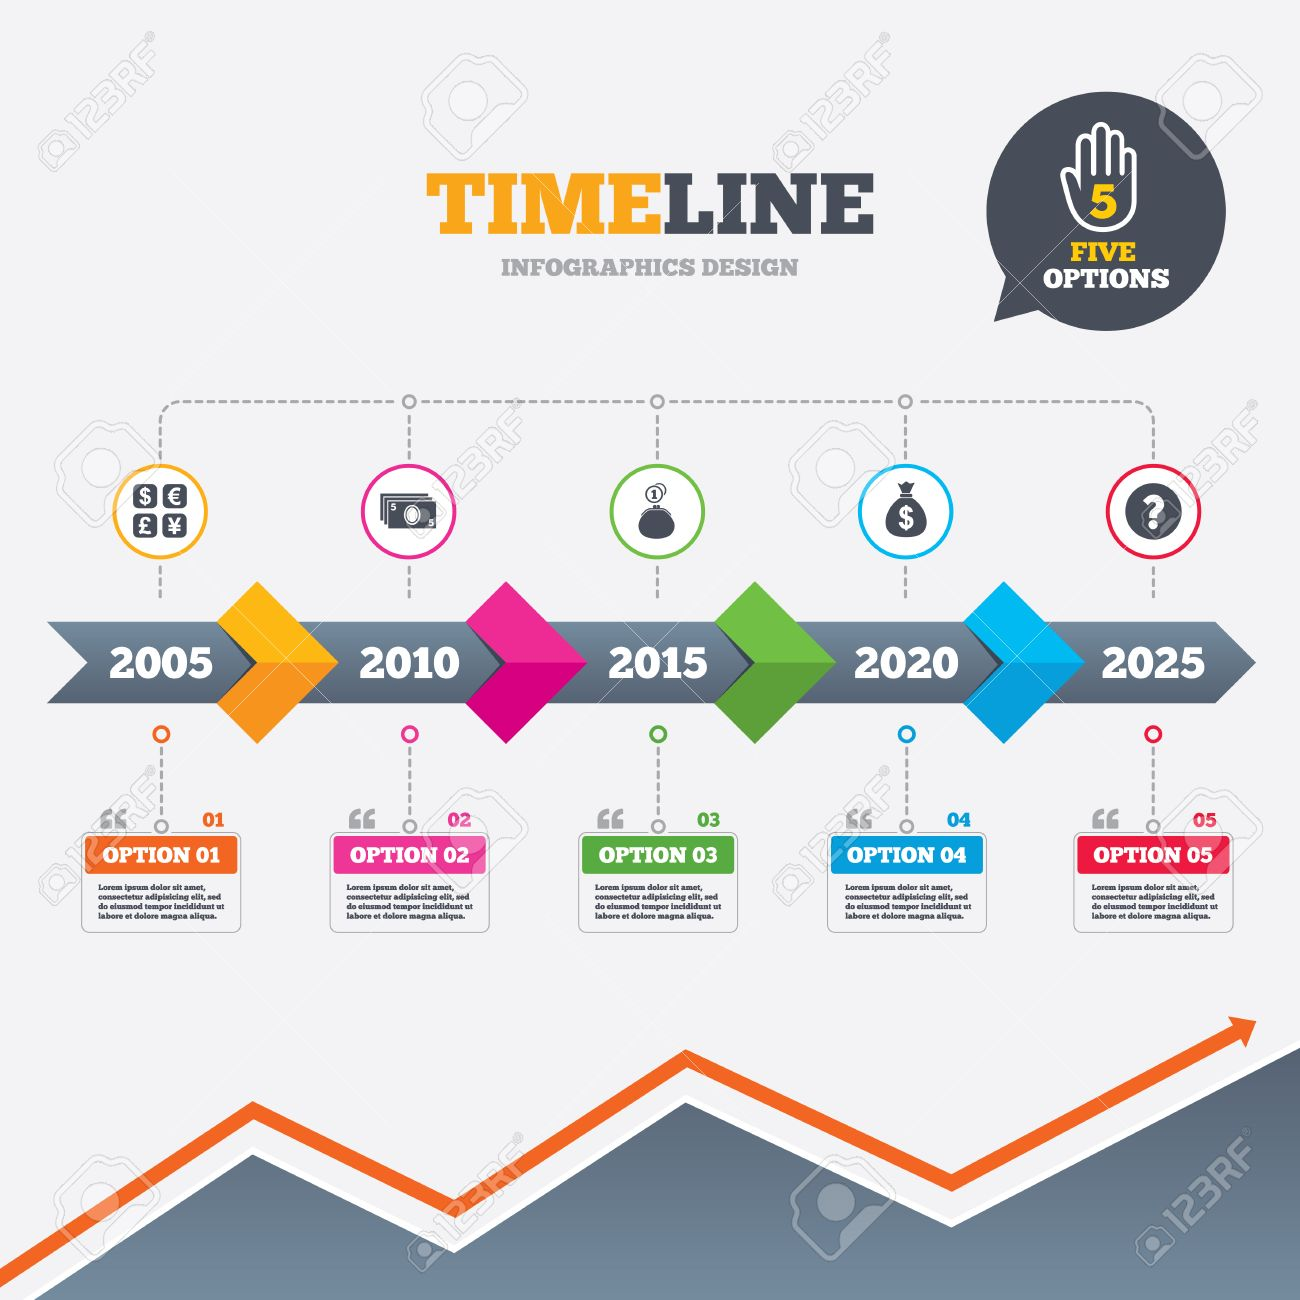 Timeline infographic with arrows currency exchange icon cash timeline infographic with arrows currency exchange icon cash money bag and wallet with coins nvjuhfo Gallery